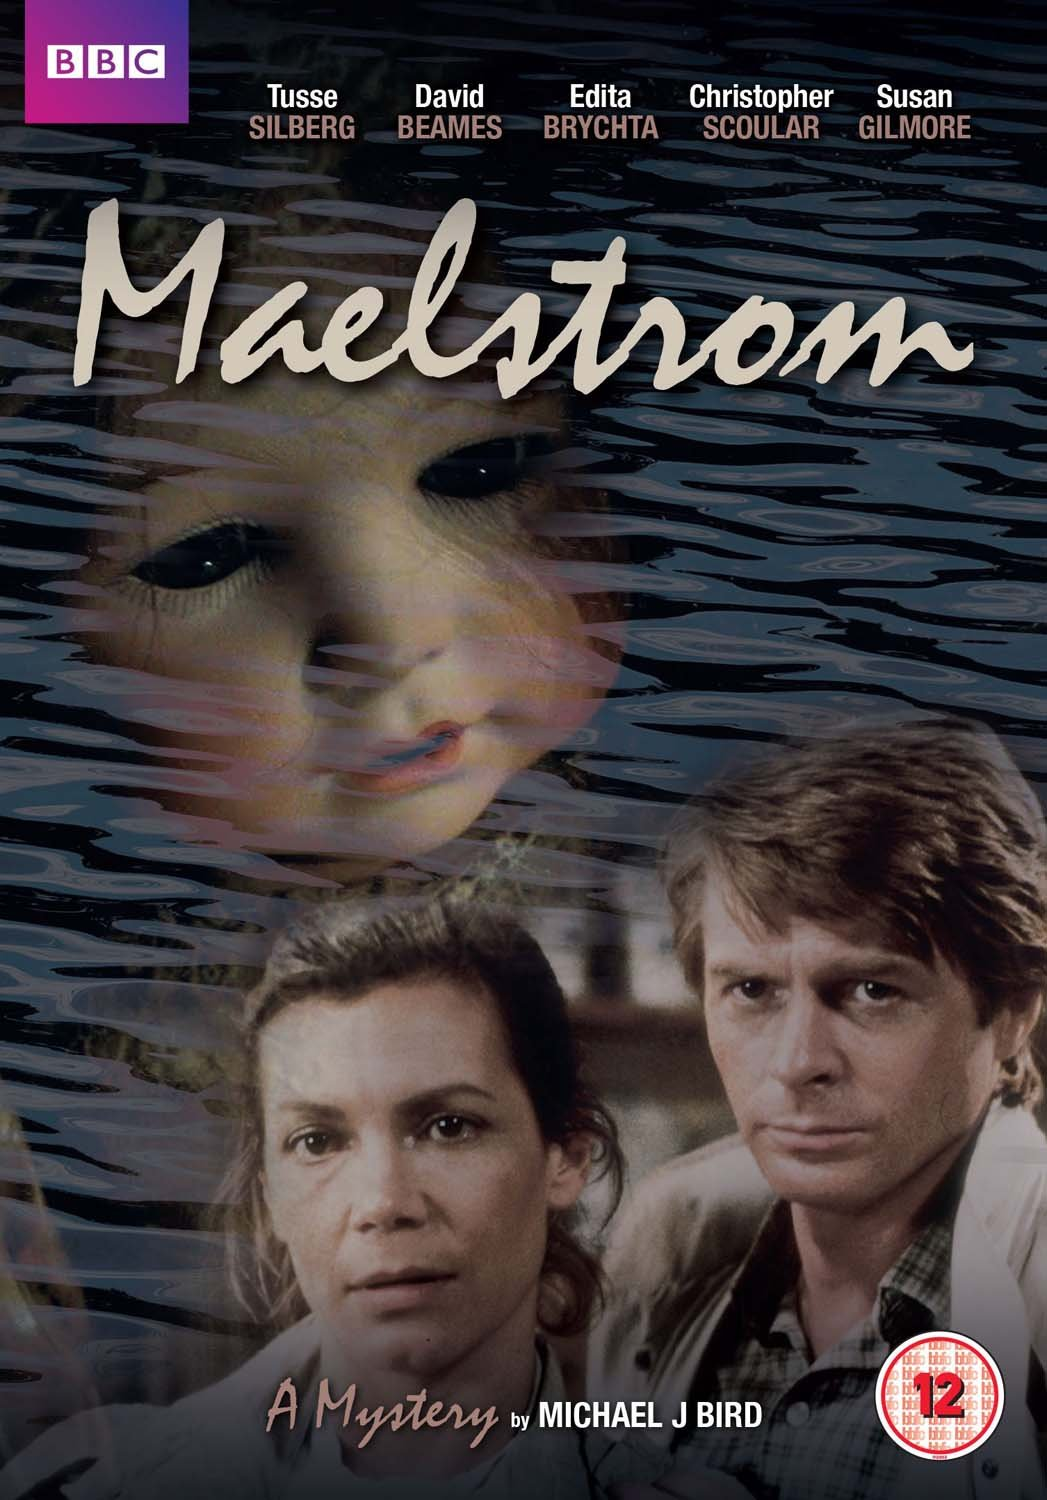 Image result for maelstrom bbc 1985